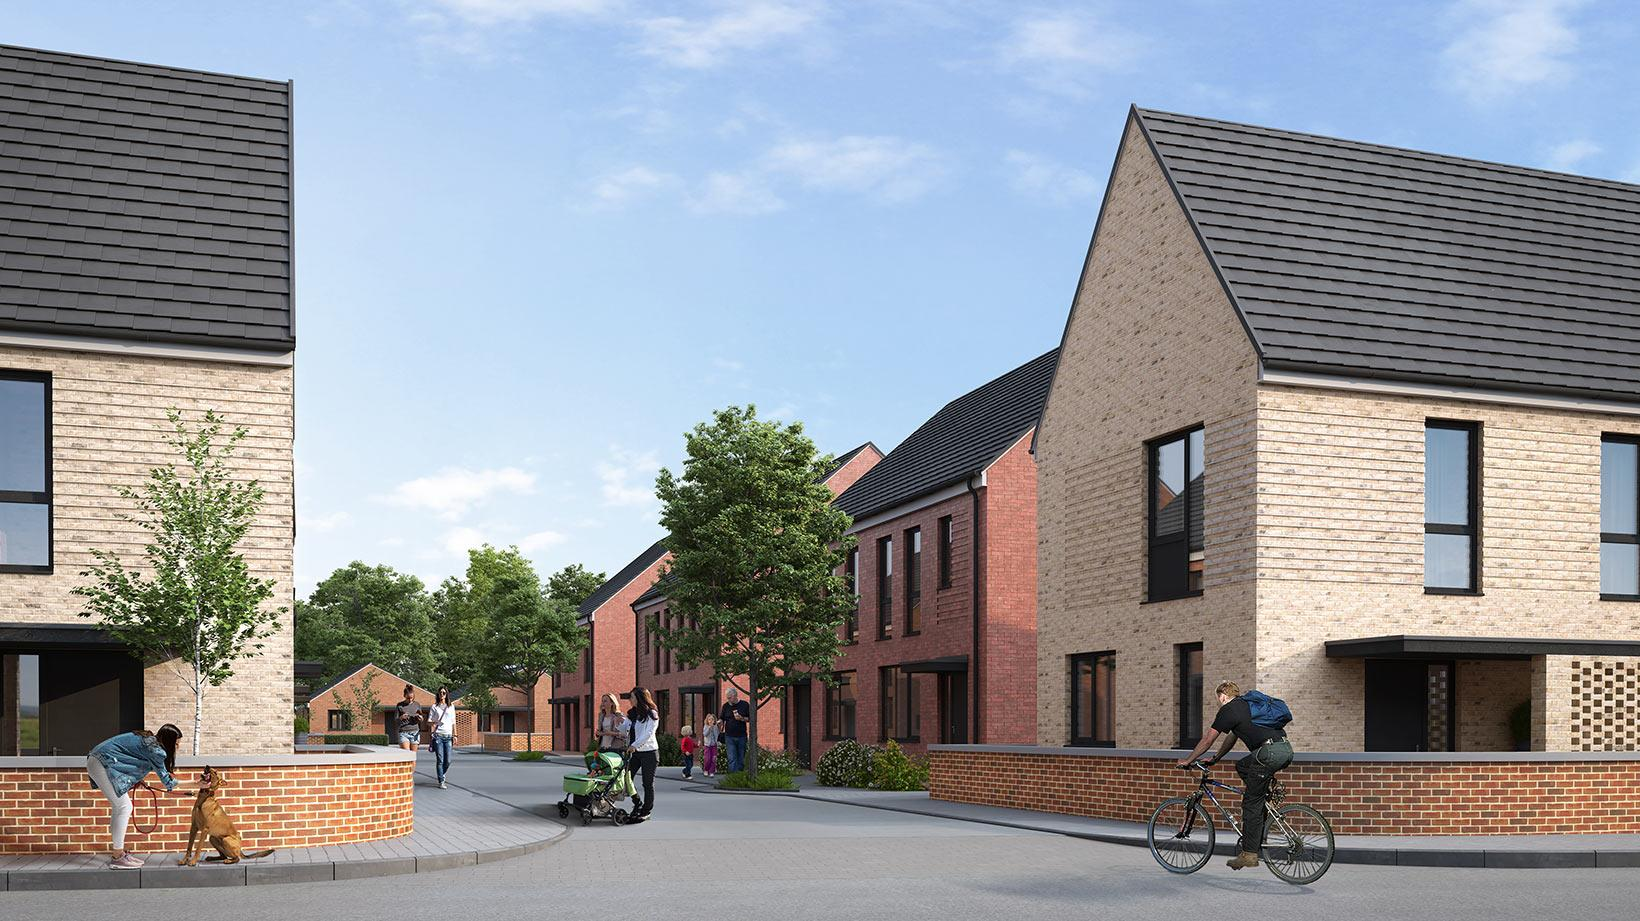 An external view of some of the properties from the Lowfield Green development by Shape Homes York.